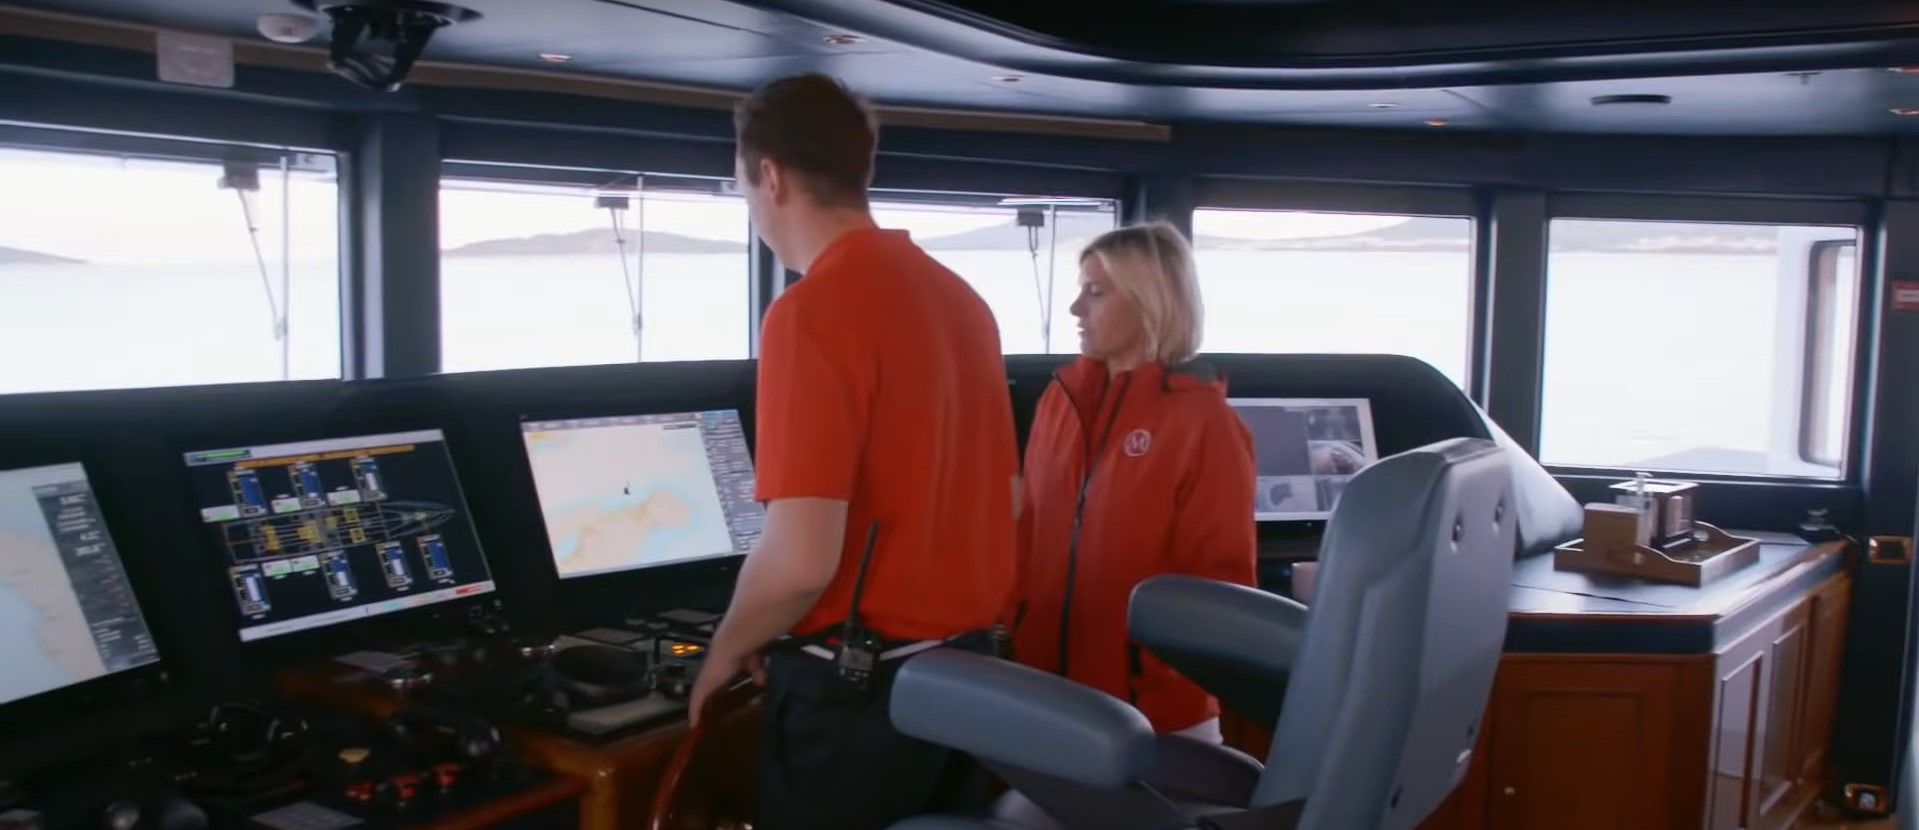 Below Deck Mediterranean S6 Ep1: What Twists To Expect?